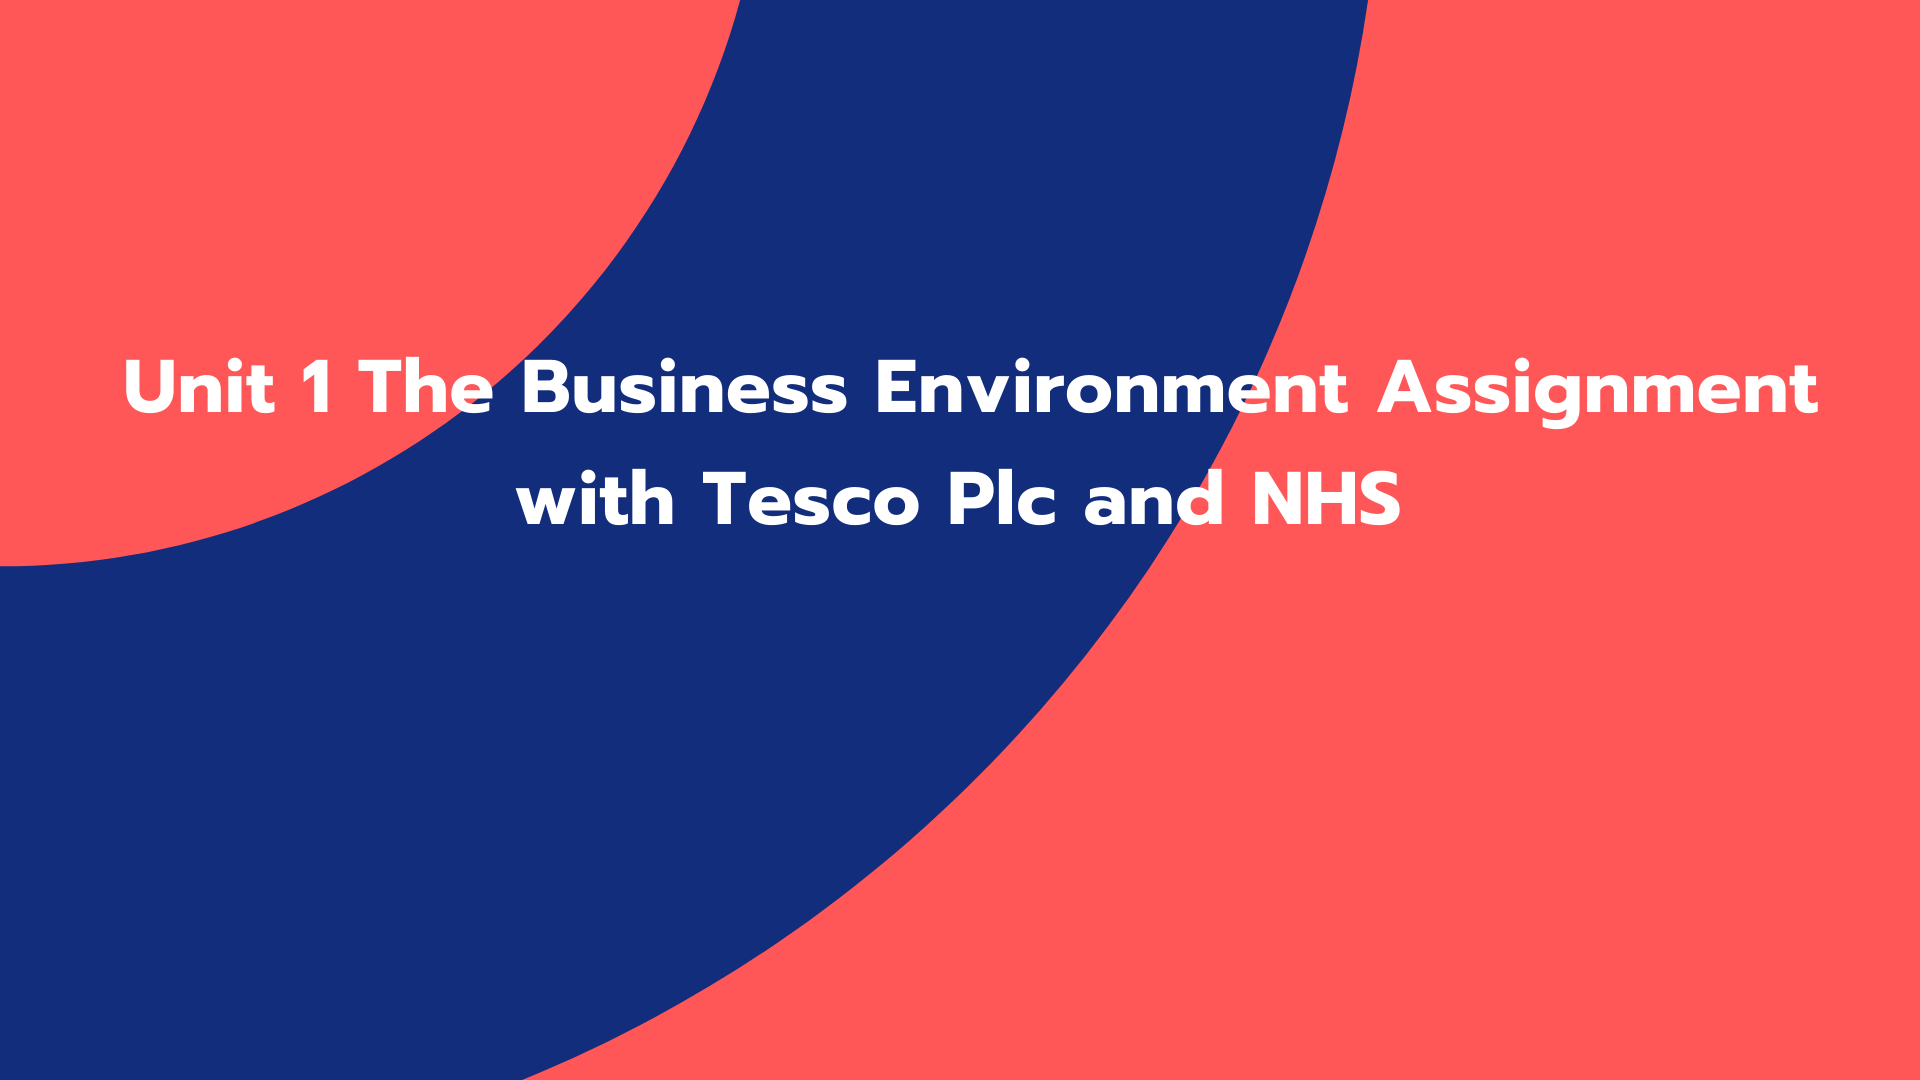 Unit 1 The Business Environment Assignment with Tesco Plc and NHS